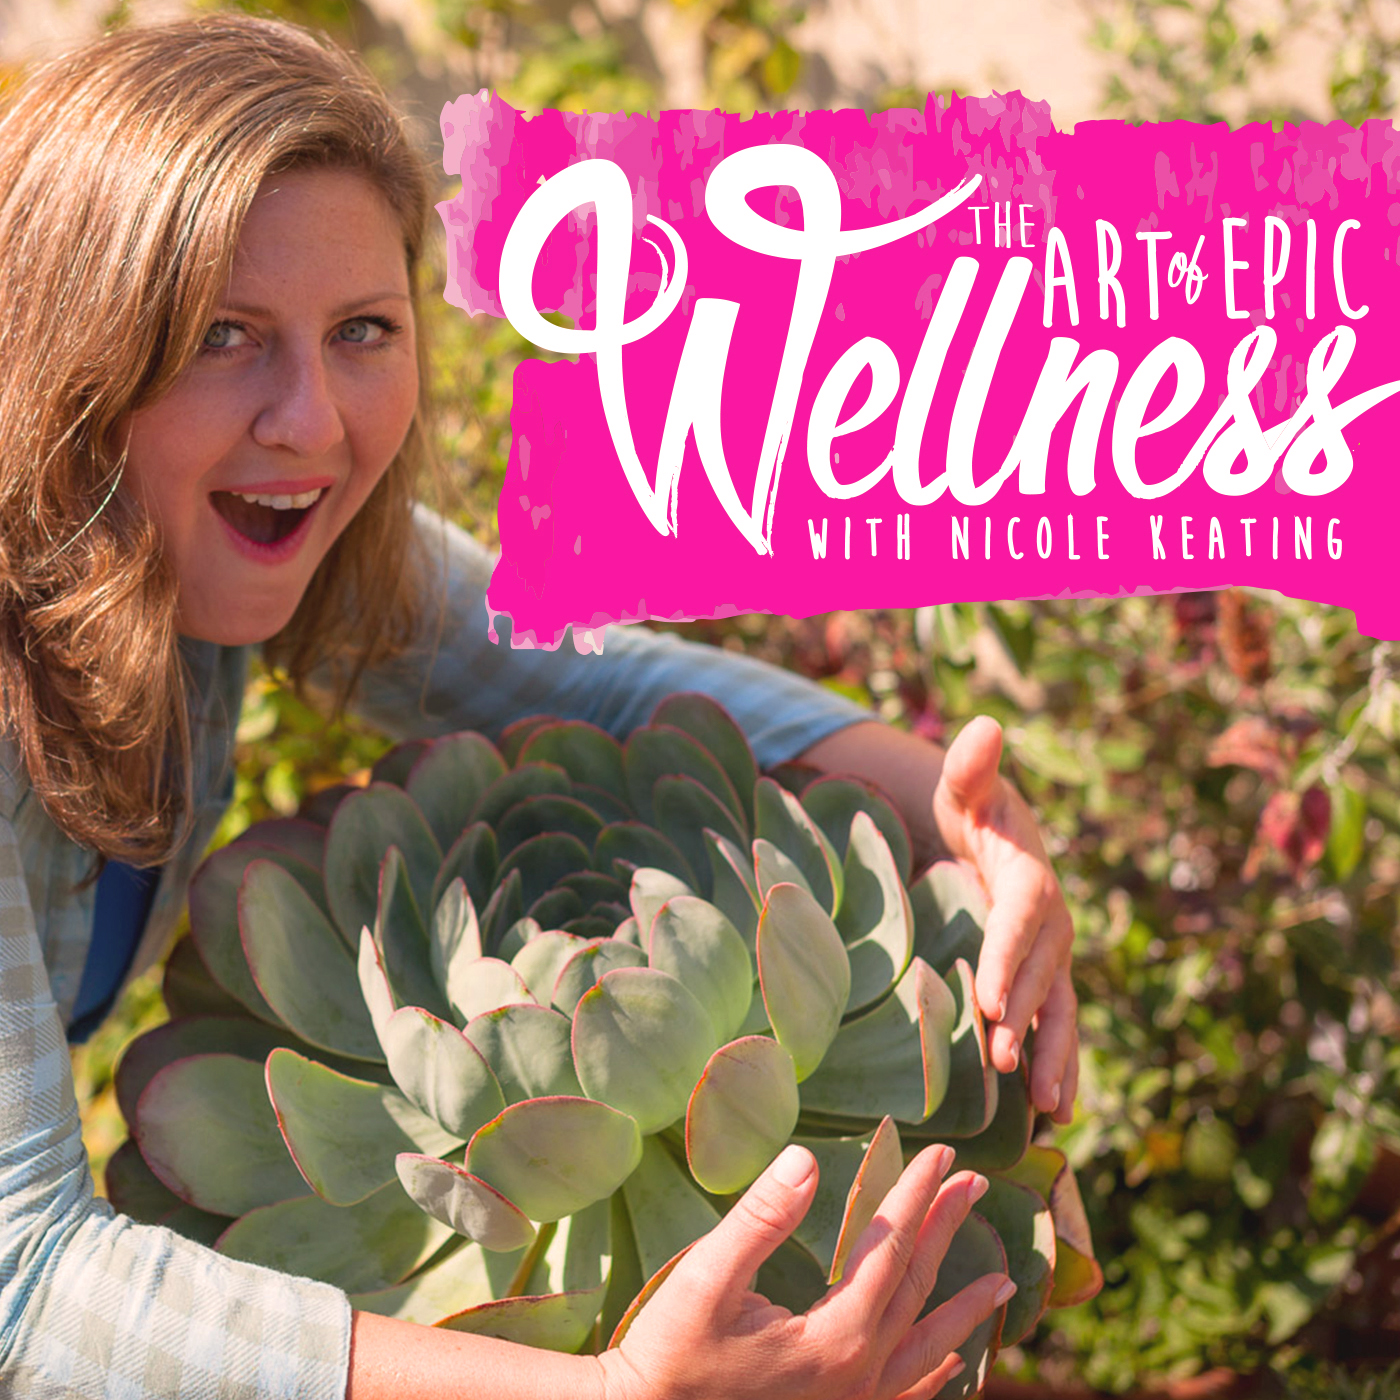 The Art of Epic Wellness: Health | Lifestyle | Alternative Health